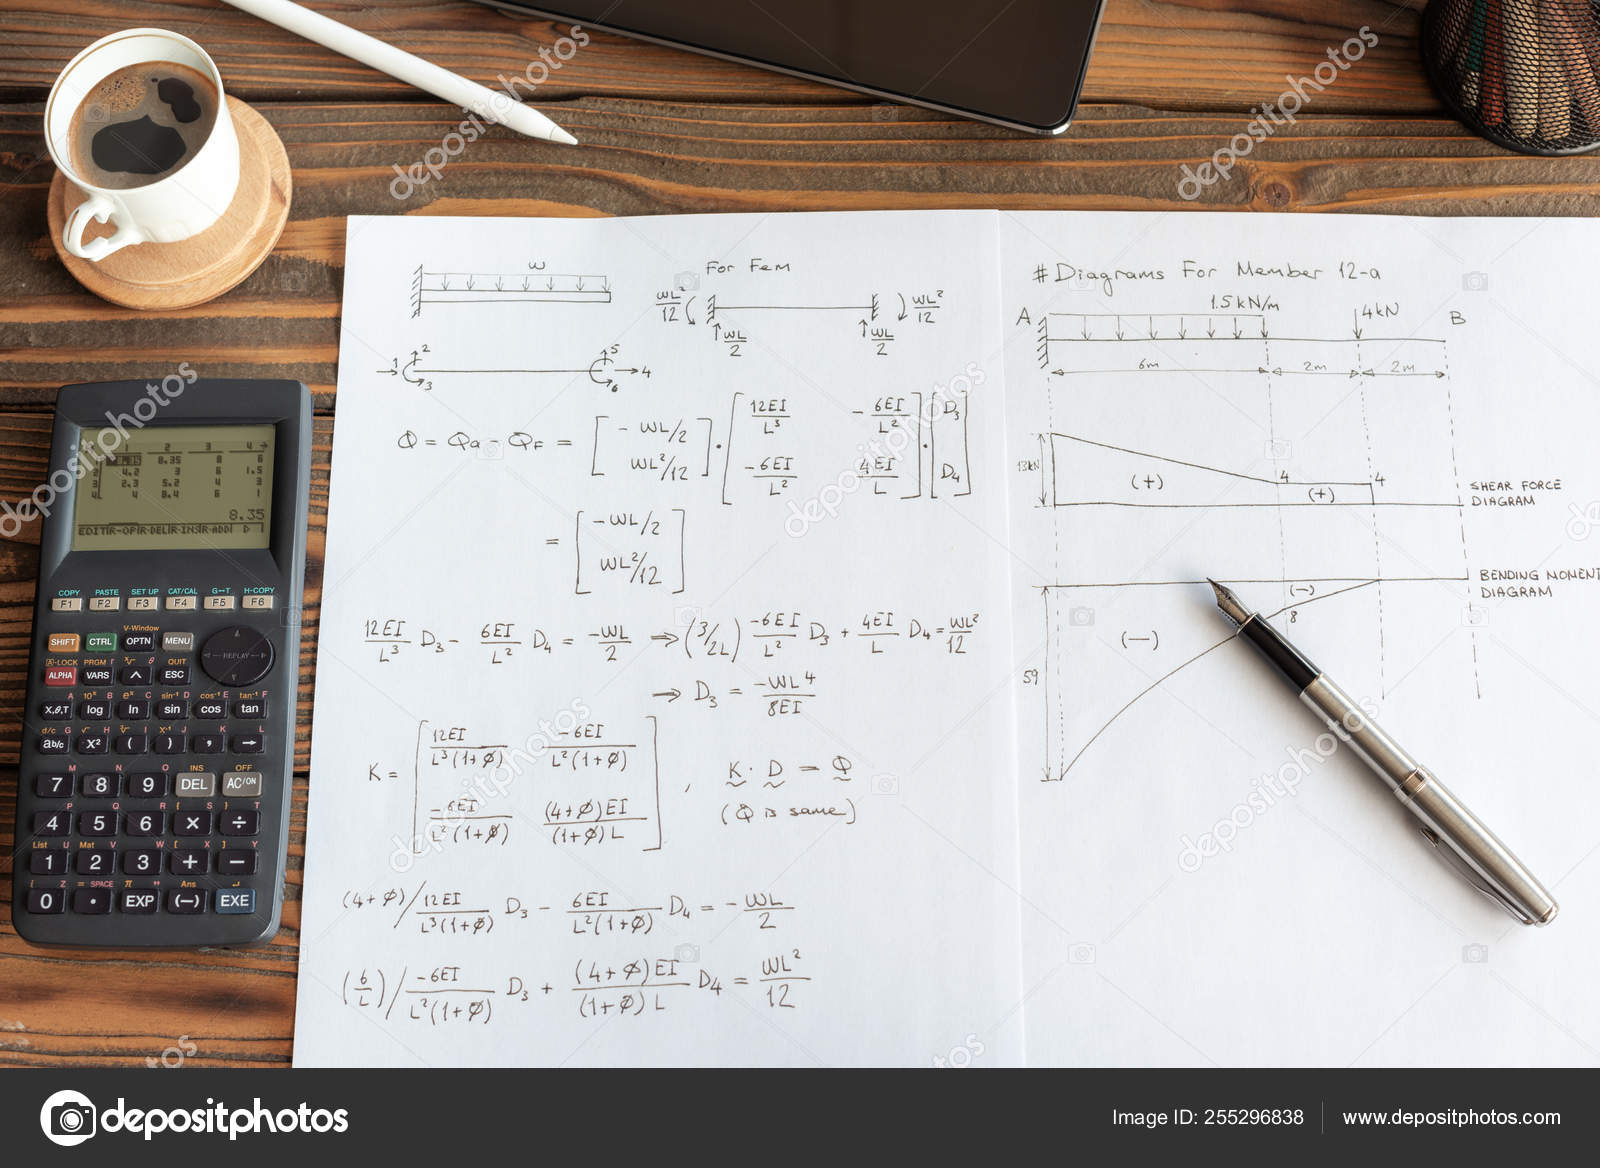 Civil Engineer or University Student Making Calculations Using S